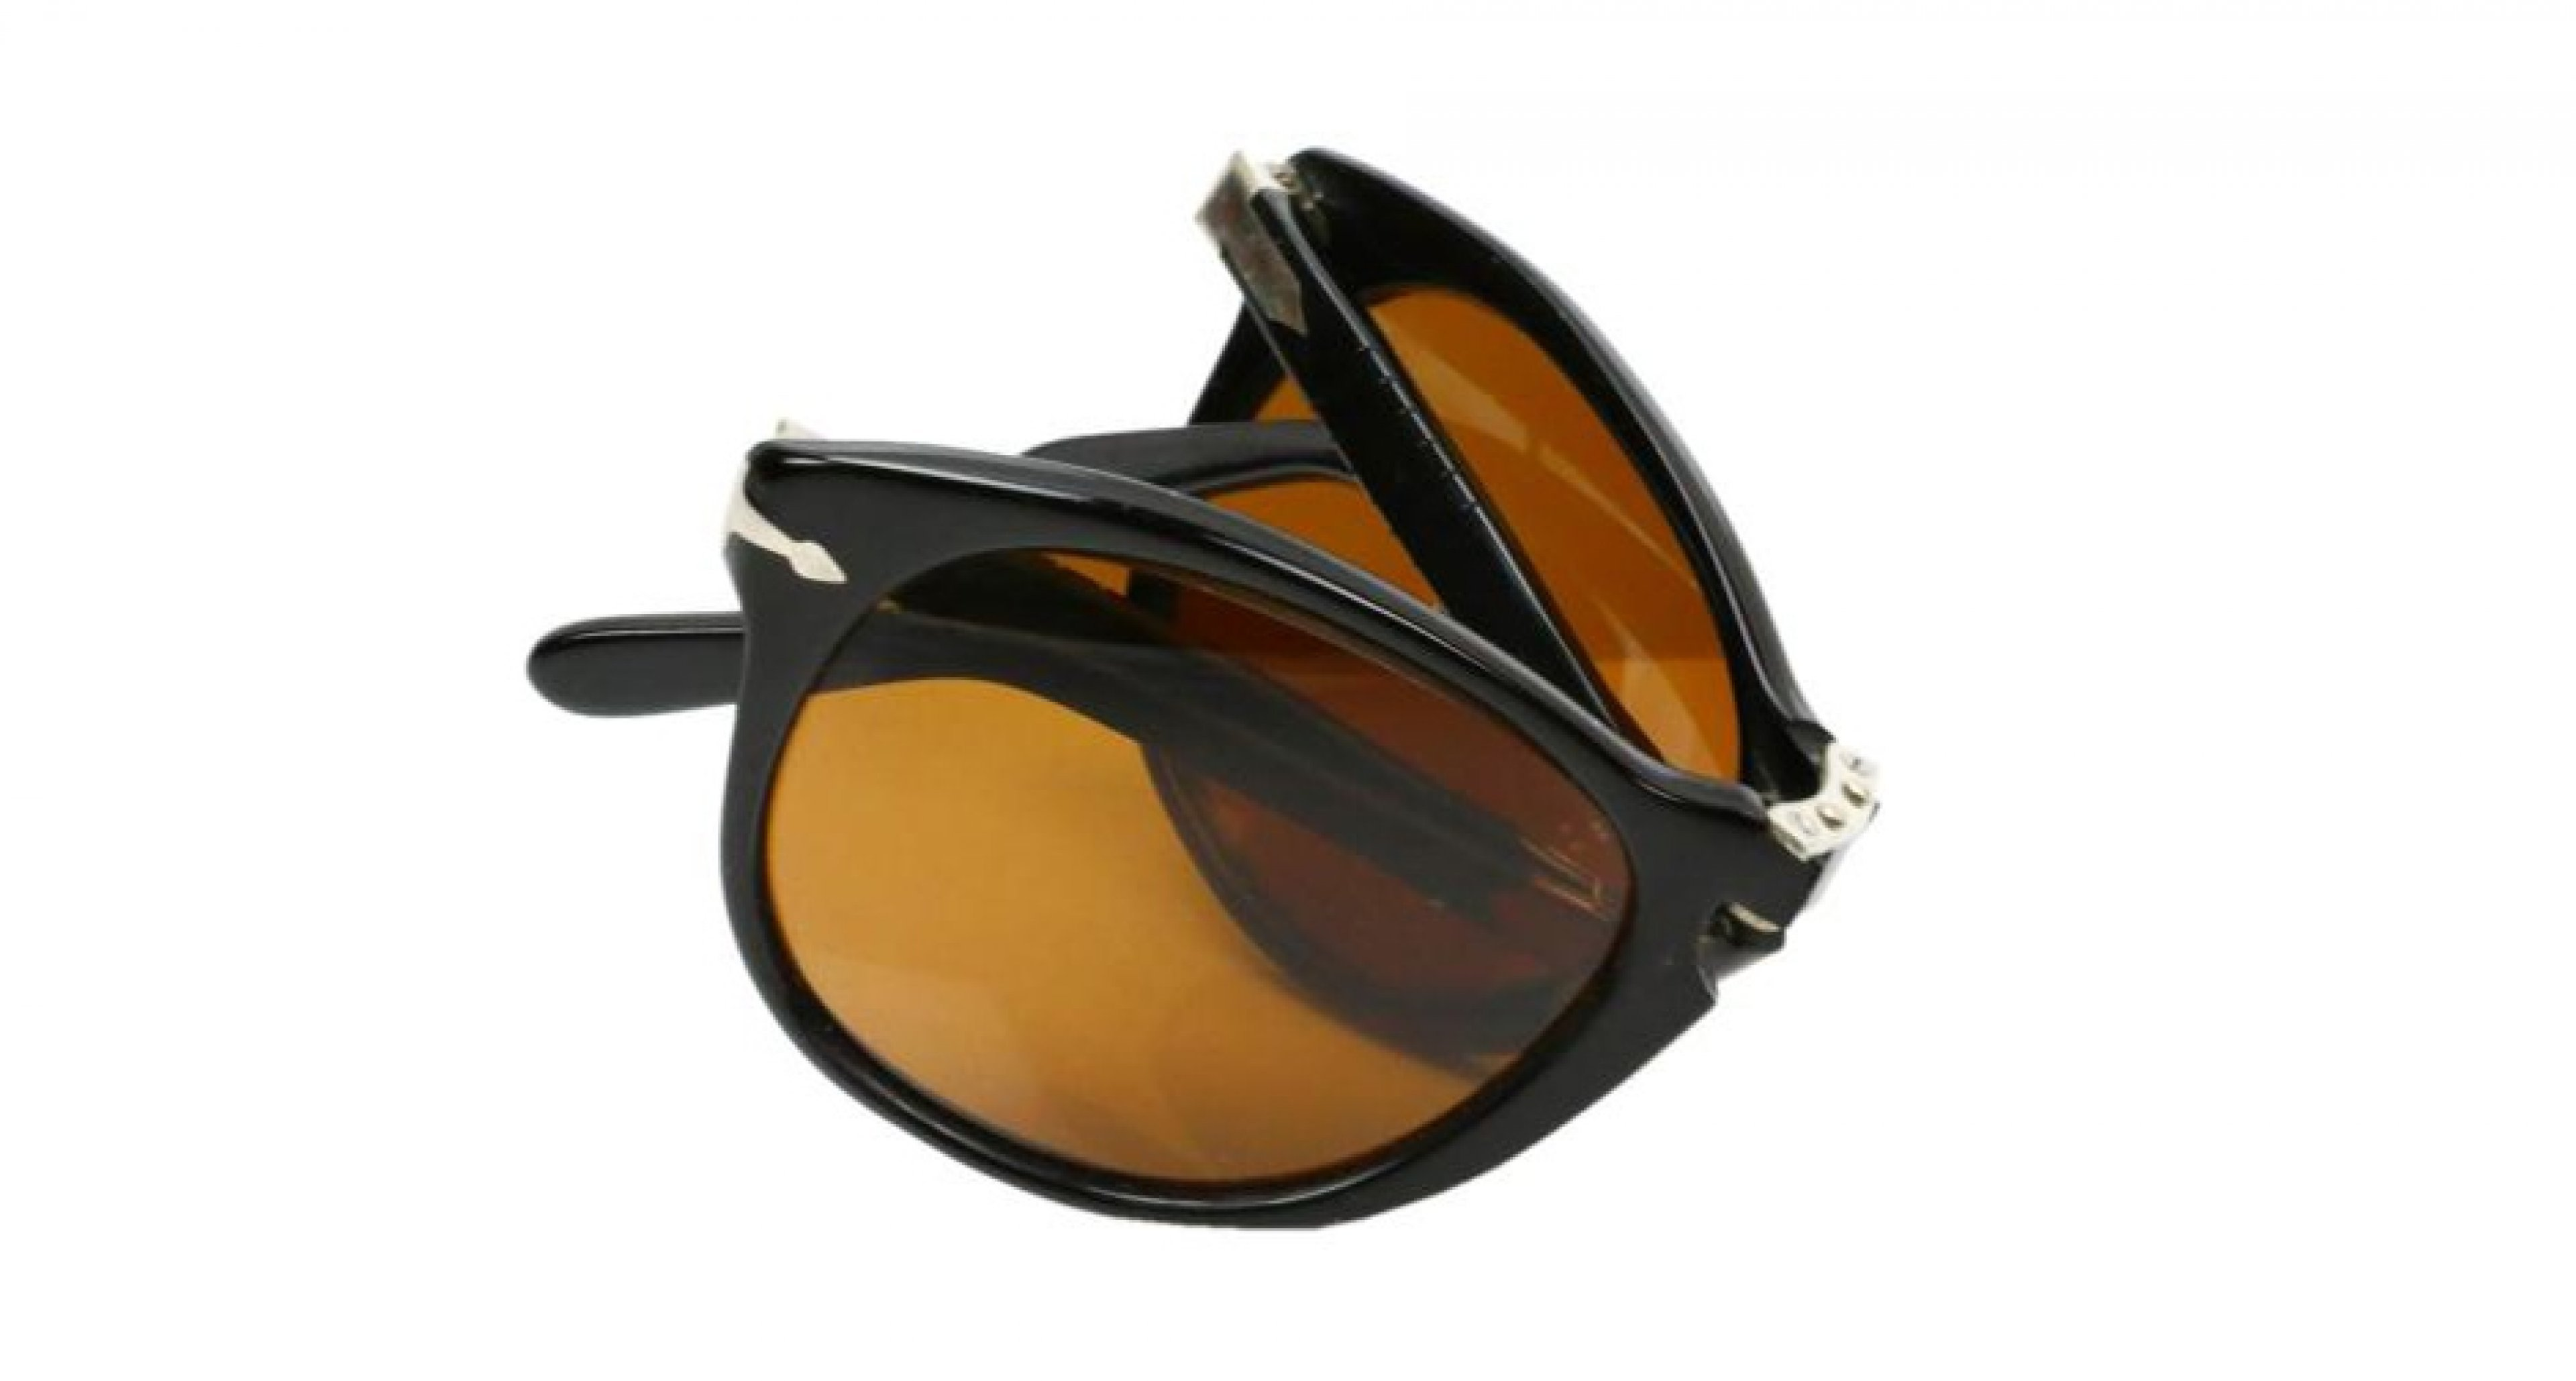 840d8143b1 Channel your inner Thomas Crown with McQueen s personal Persol ...